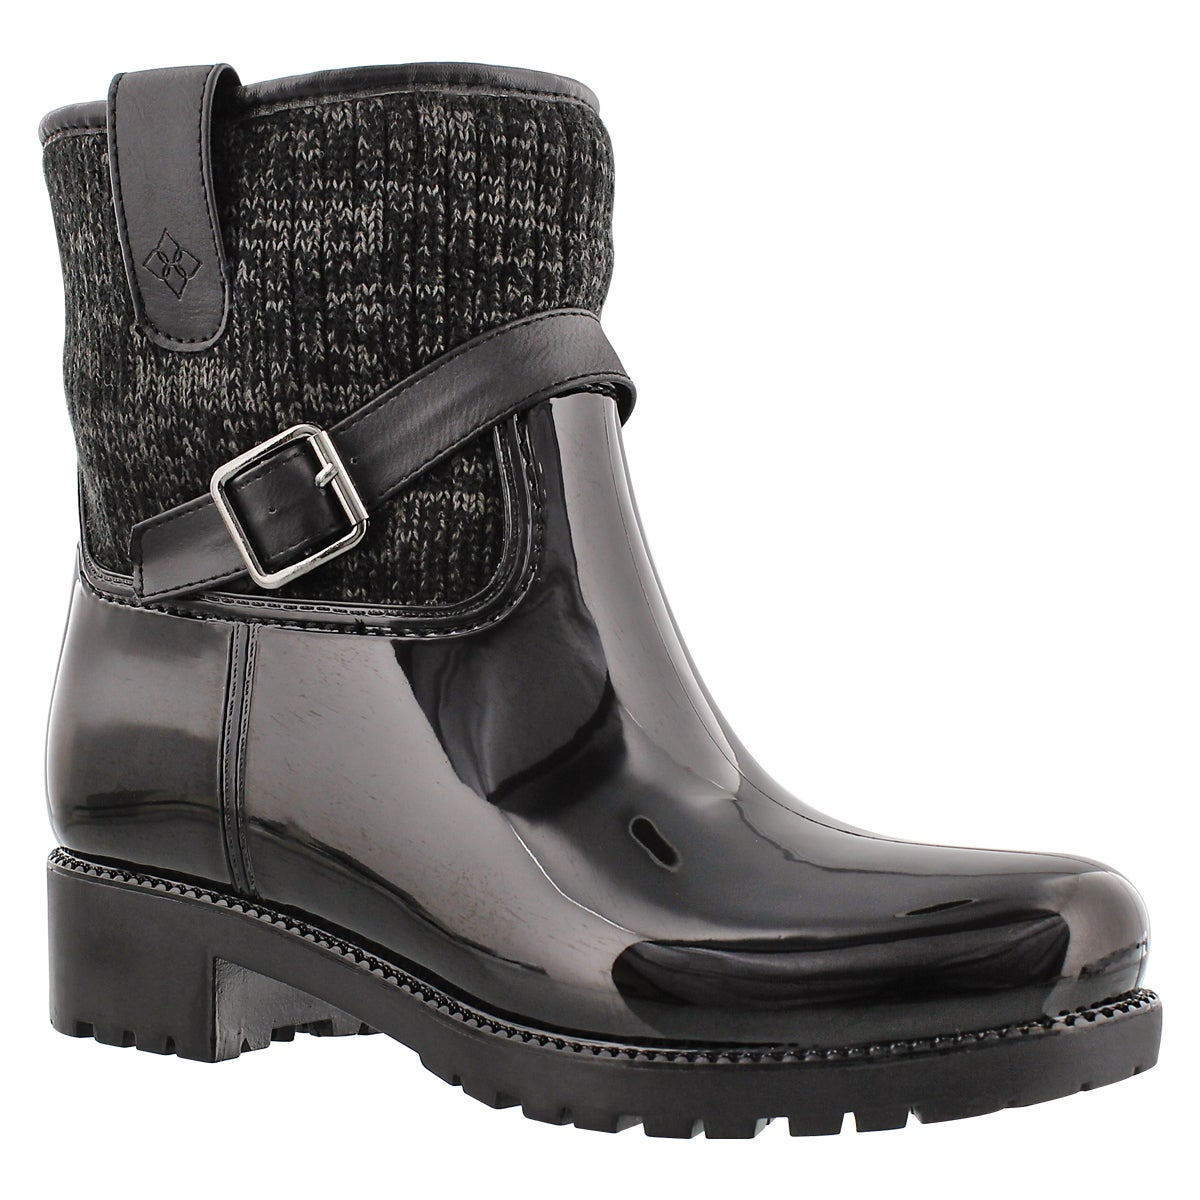 Lds Shelton blk buckle rain boot